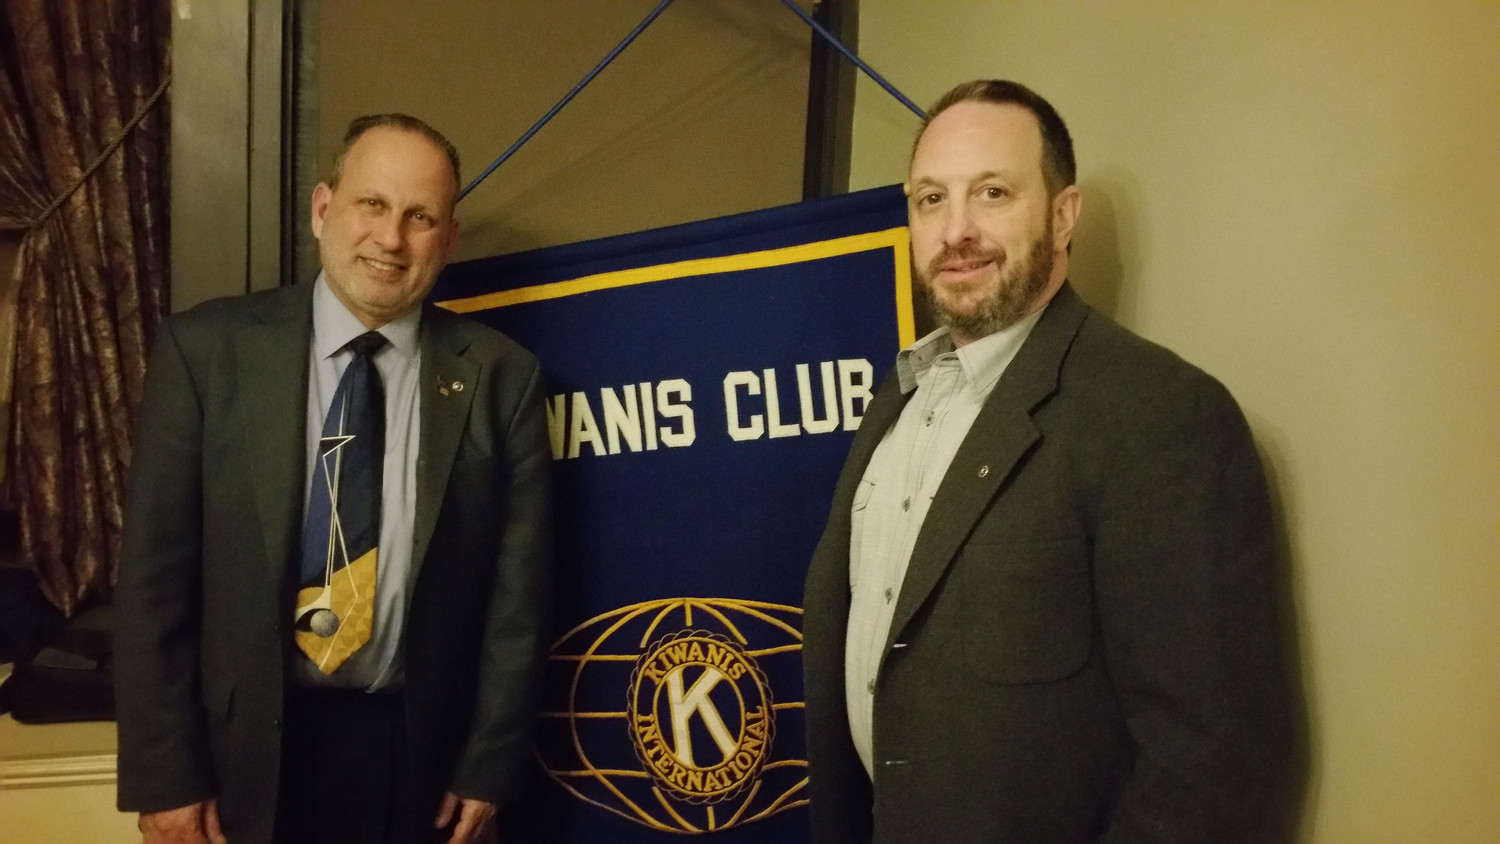 Peninsula Kiwanis increased its membership with the induction of Far Rockaway resident Bennett Pearlman, right, with club President Michael Gliner.